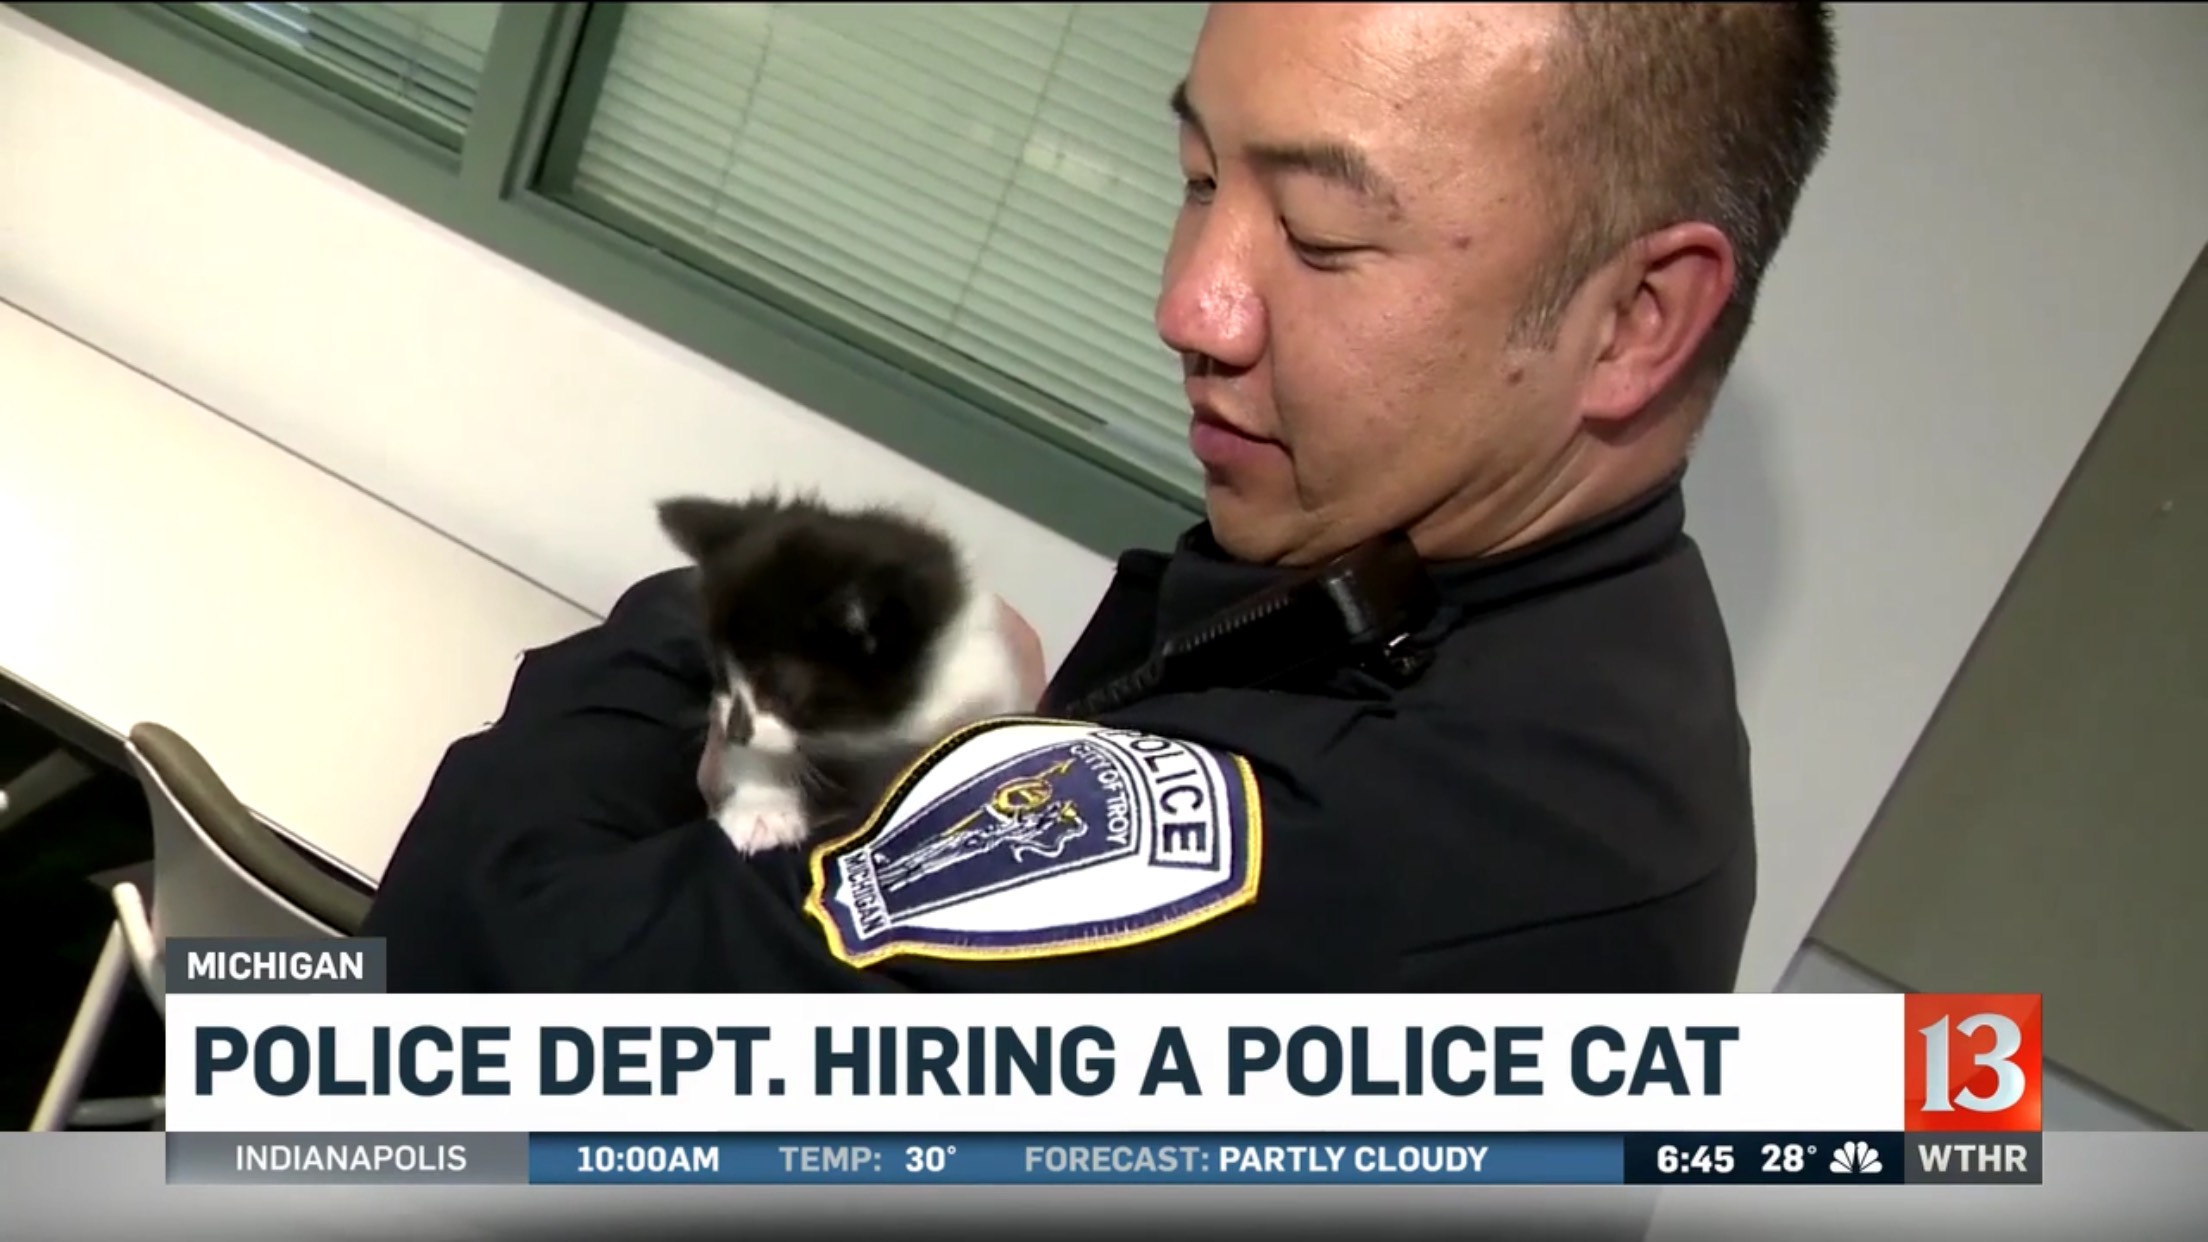 Police Dept. Hiring A Police Cat